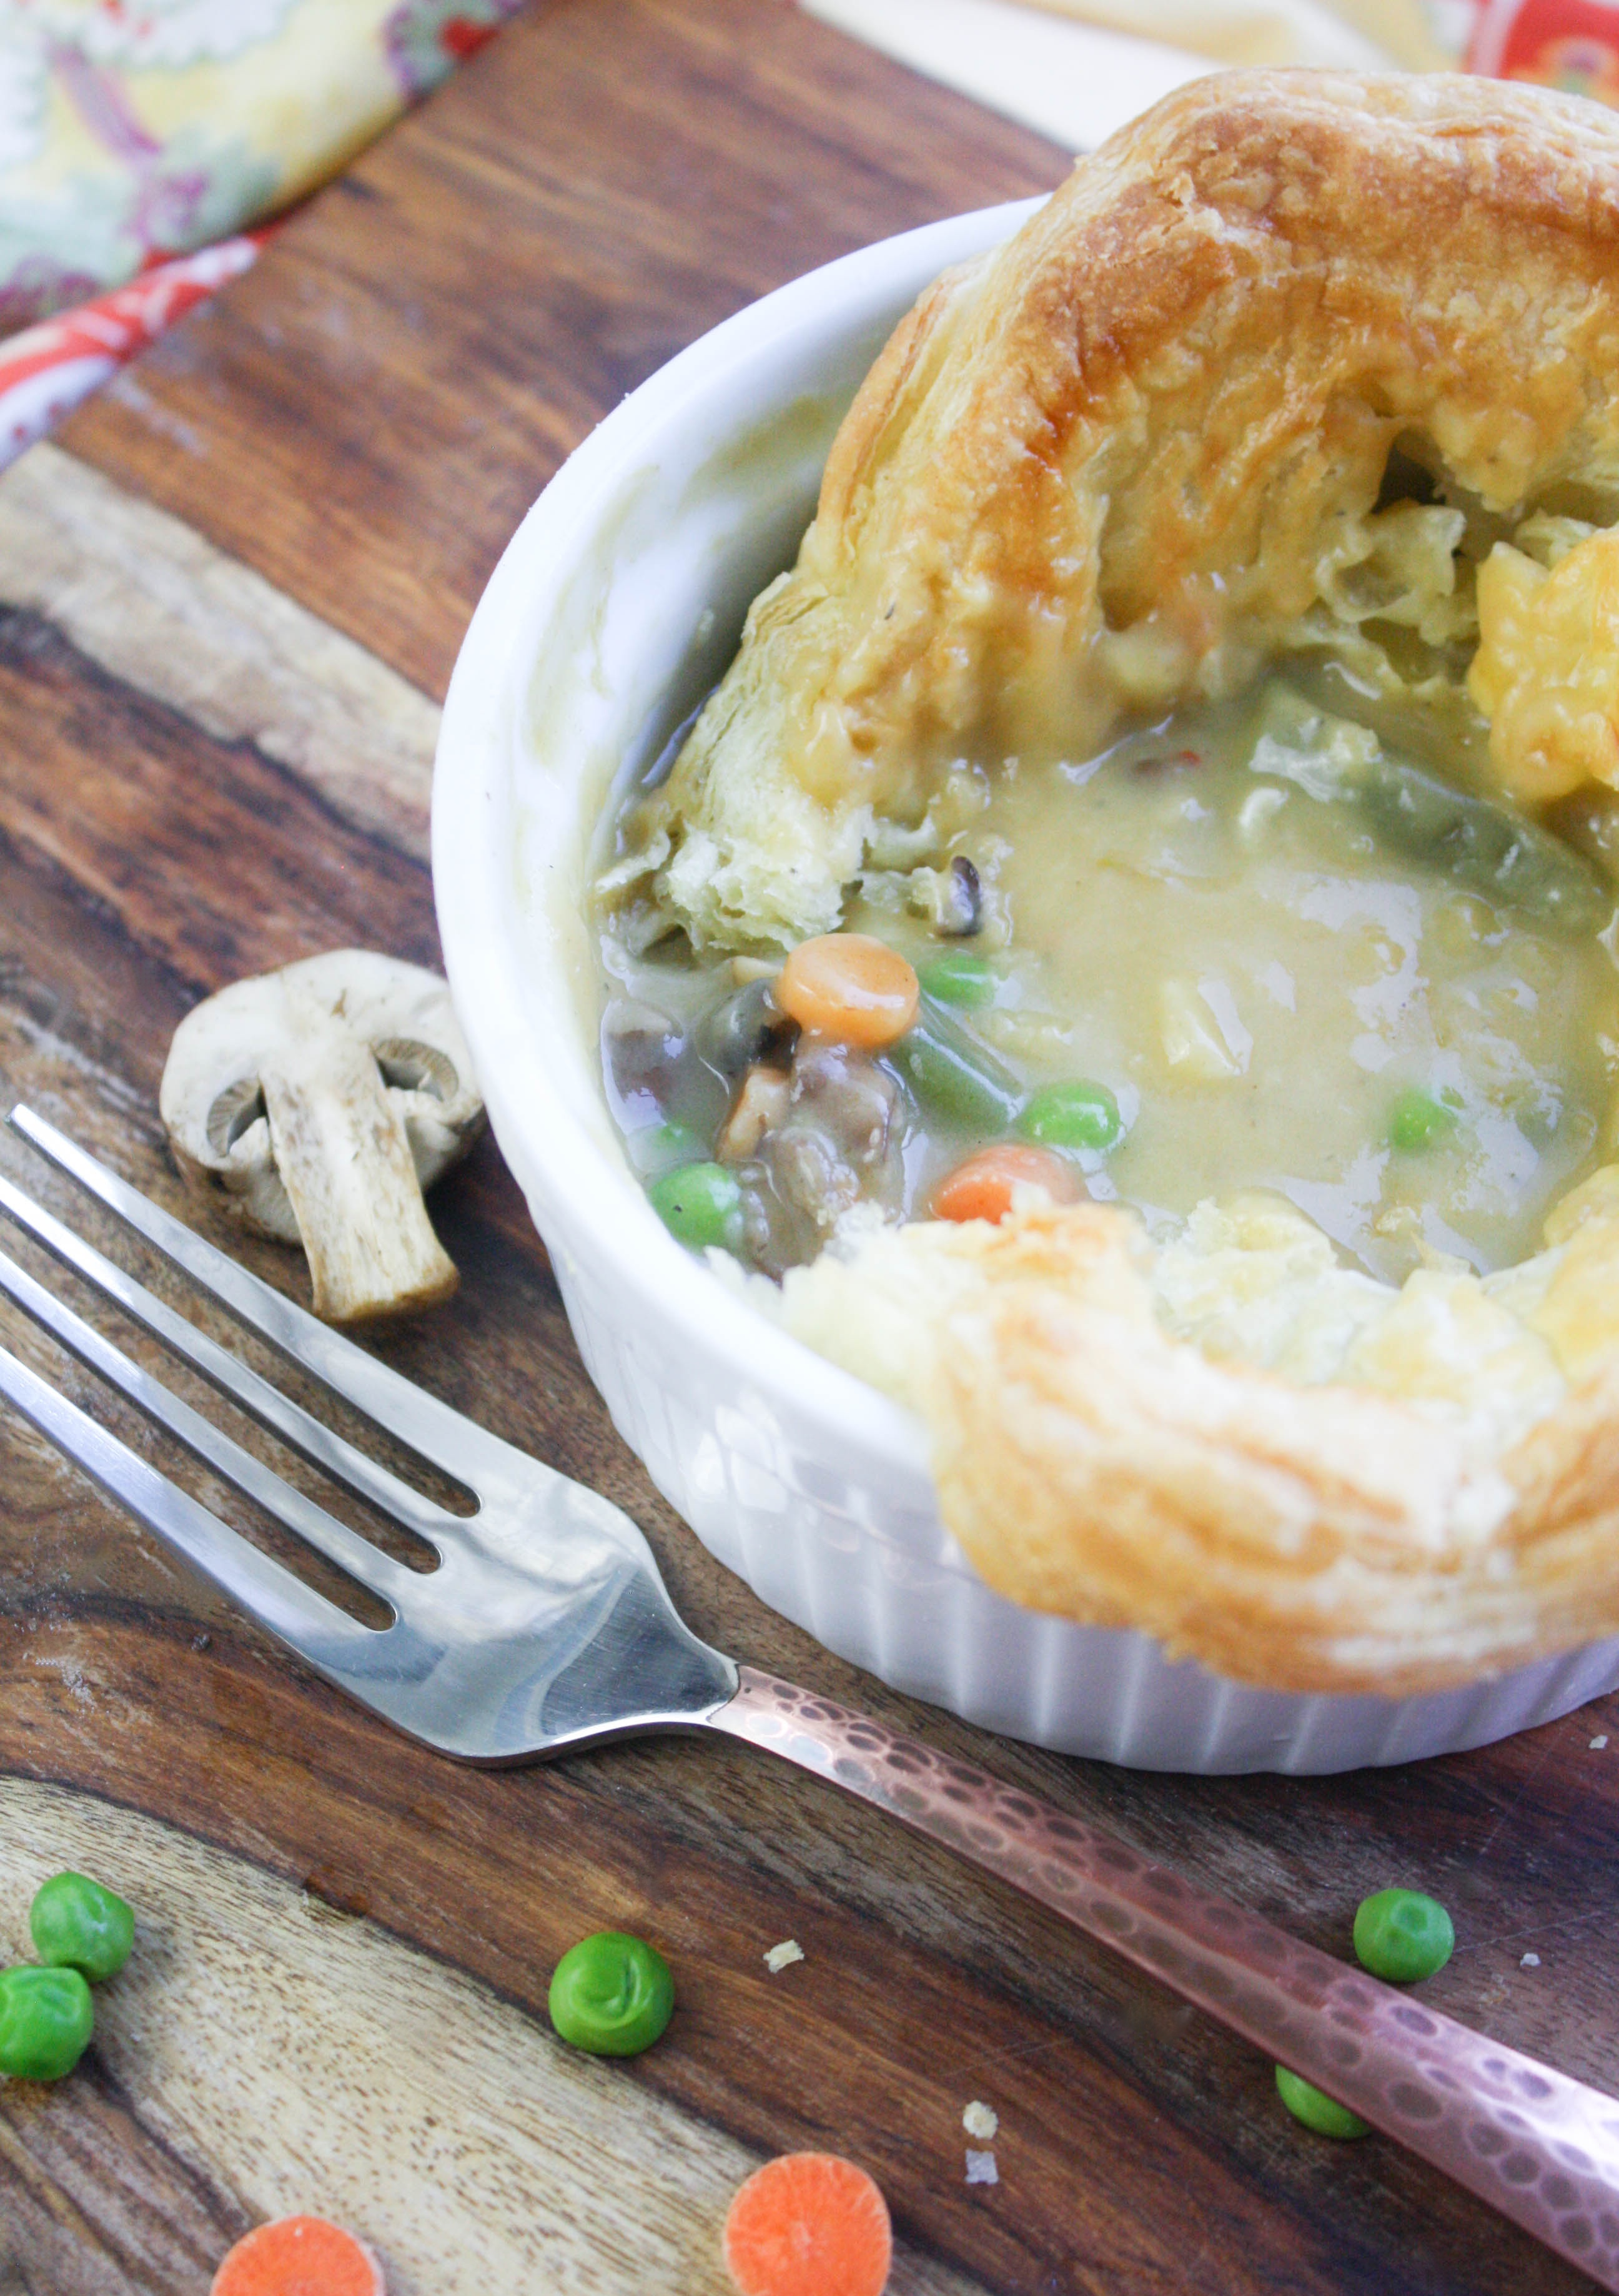 Easy Puffy Pastry Vegetable Pot Pies are an amazingly wonderful dish to serve when it's cold. Easy Puffy Pastry Vegetable Pot Pies are so tasty and filling. You'll love this meatless meal.